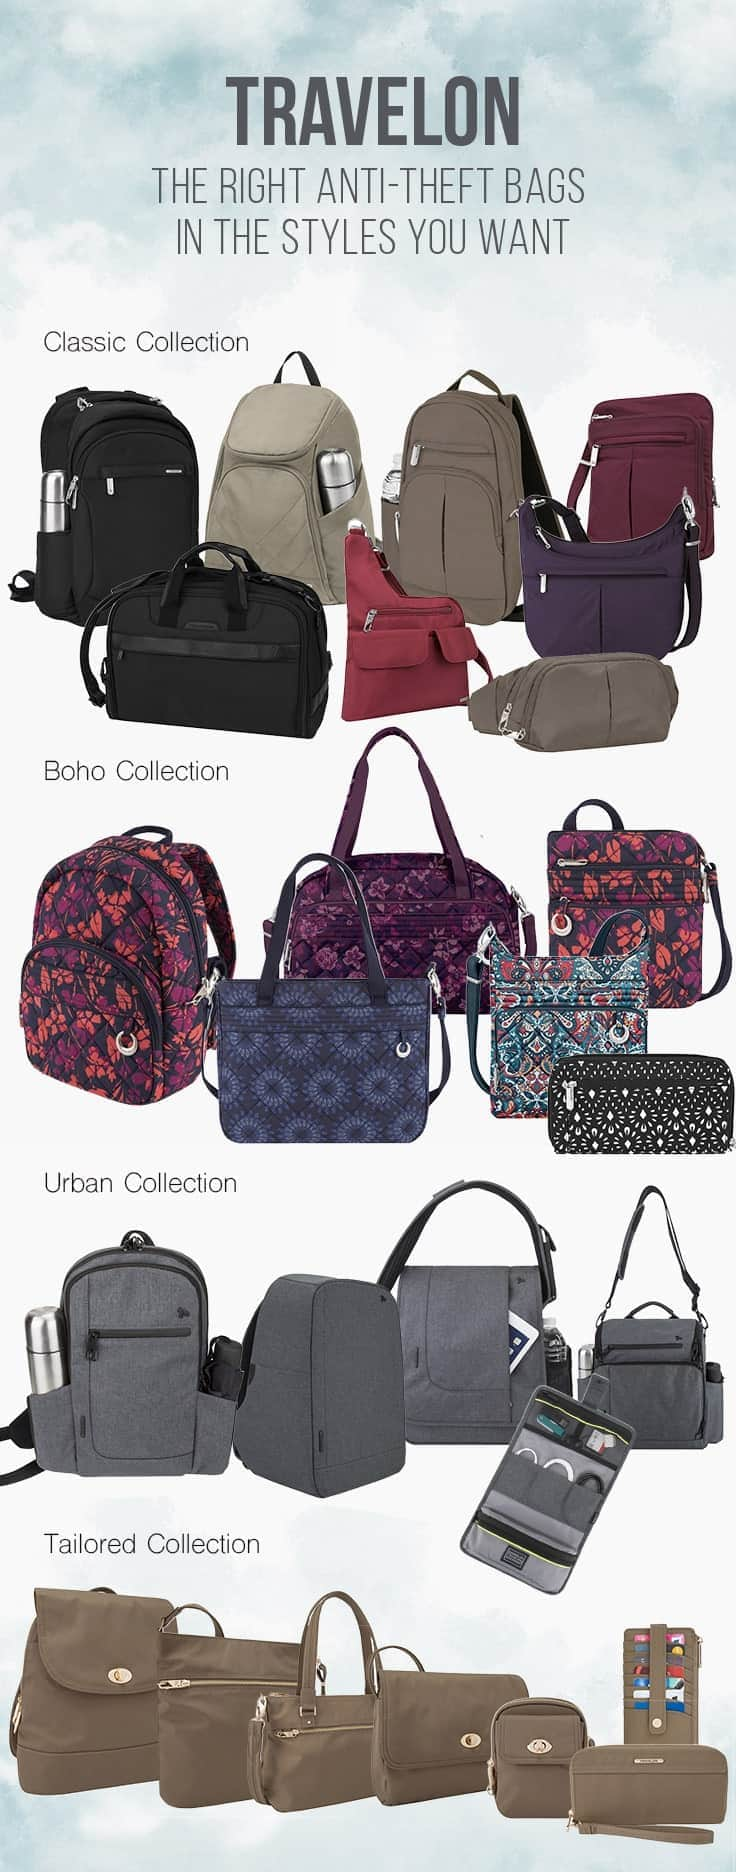 Fashionable Anti-Theft Bags from Travelon in Styles you Want